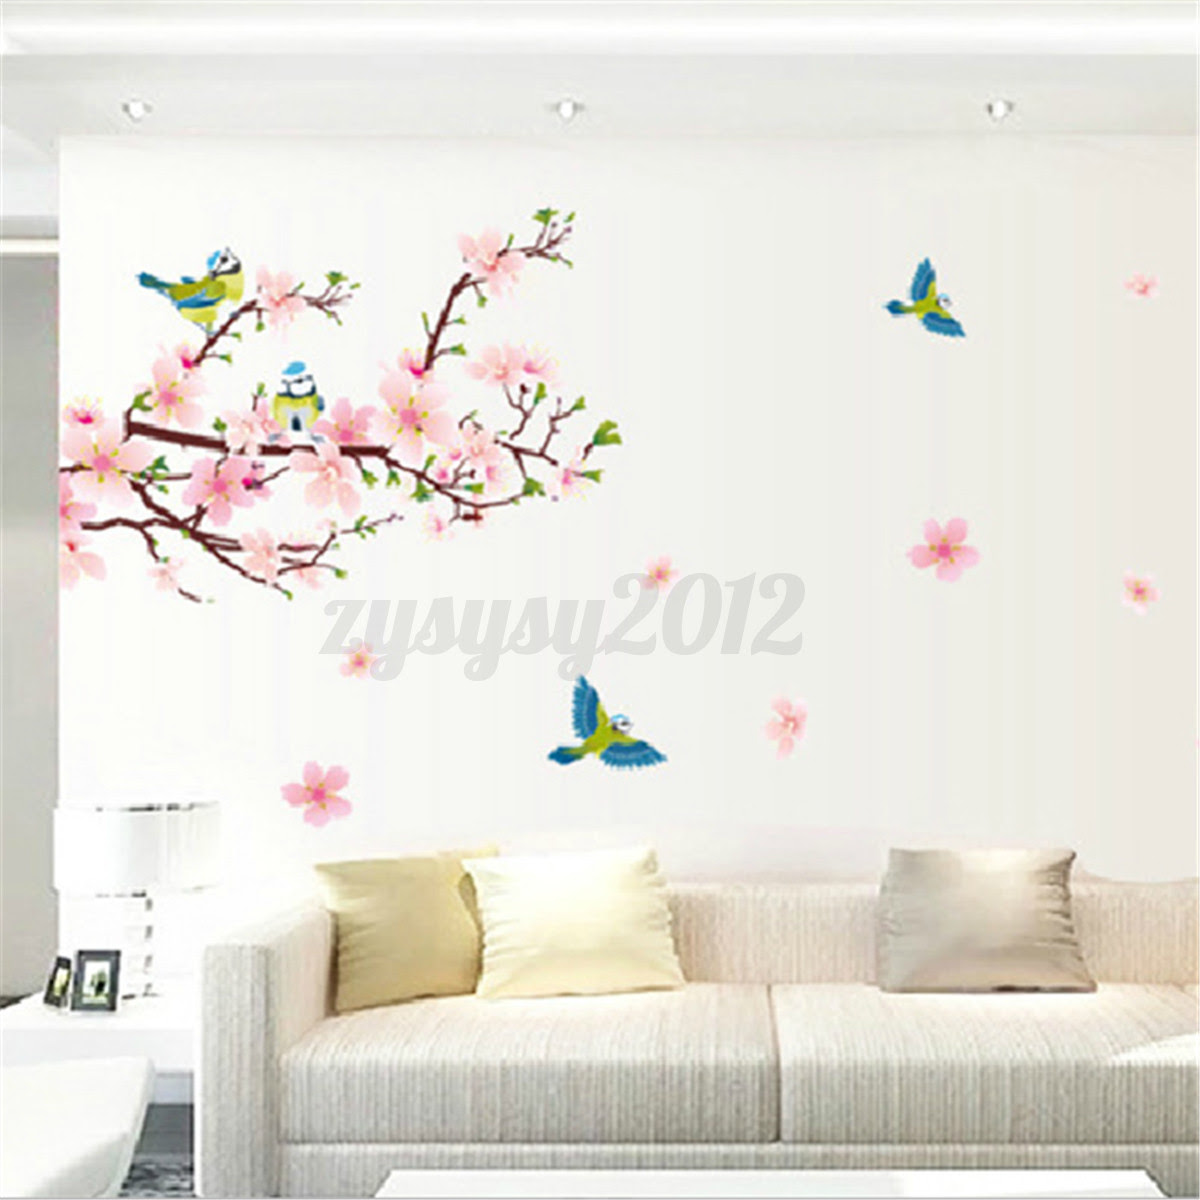 Peach Blossom Birds Flowers Beautiful Living Room Decals Wall Sticker Removable  eBay